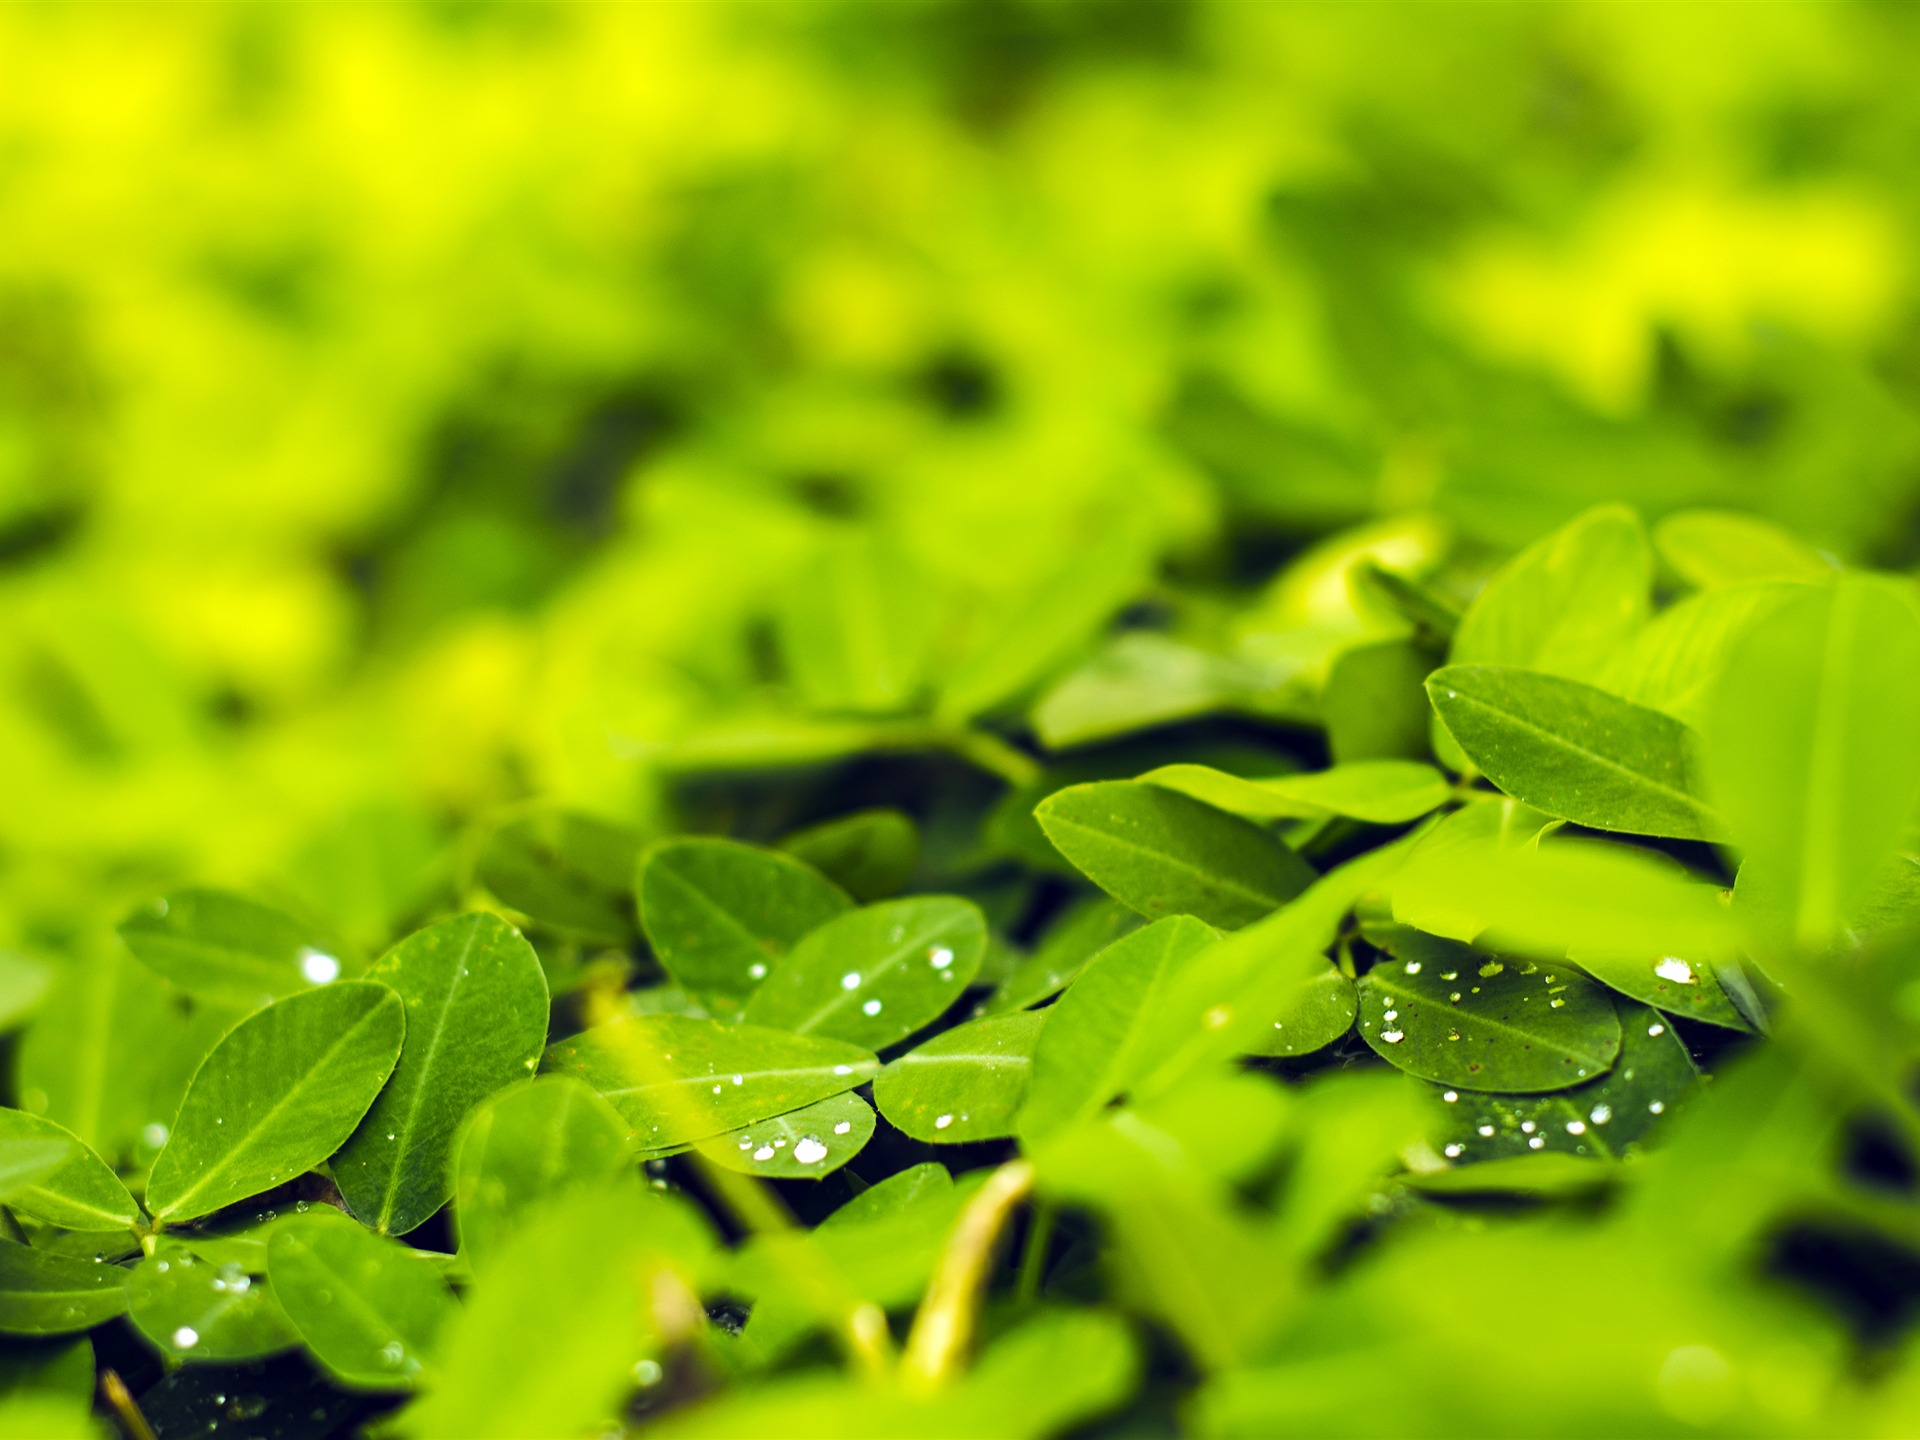 Spring fresh green leaves water droplets - 1920x1440 wallpaper download